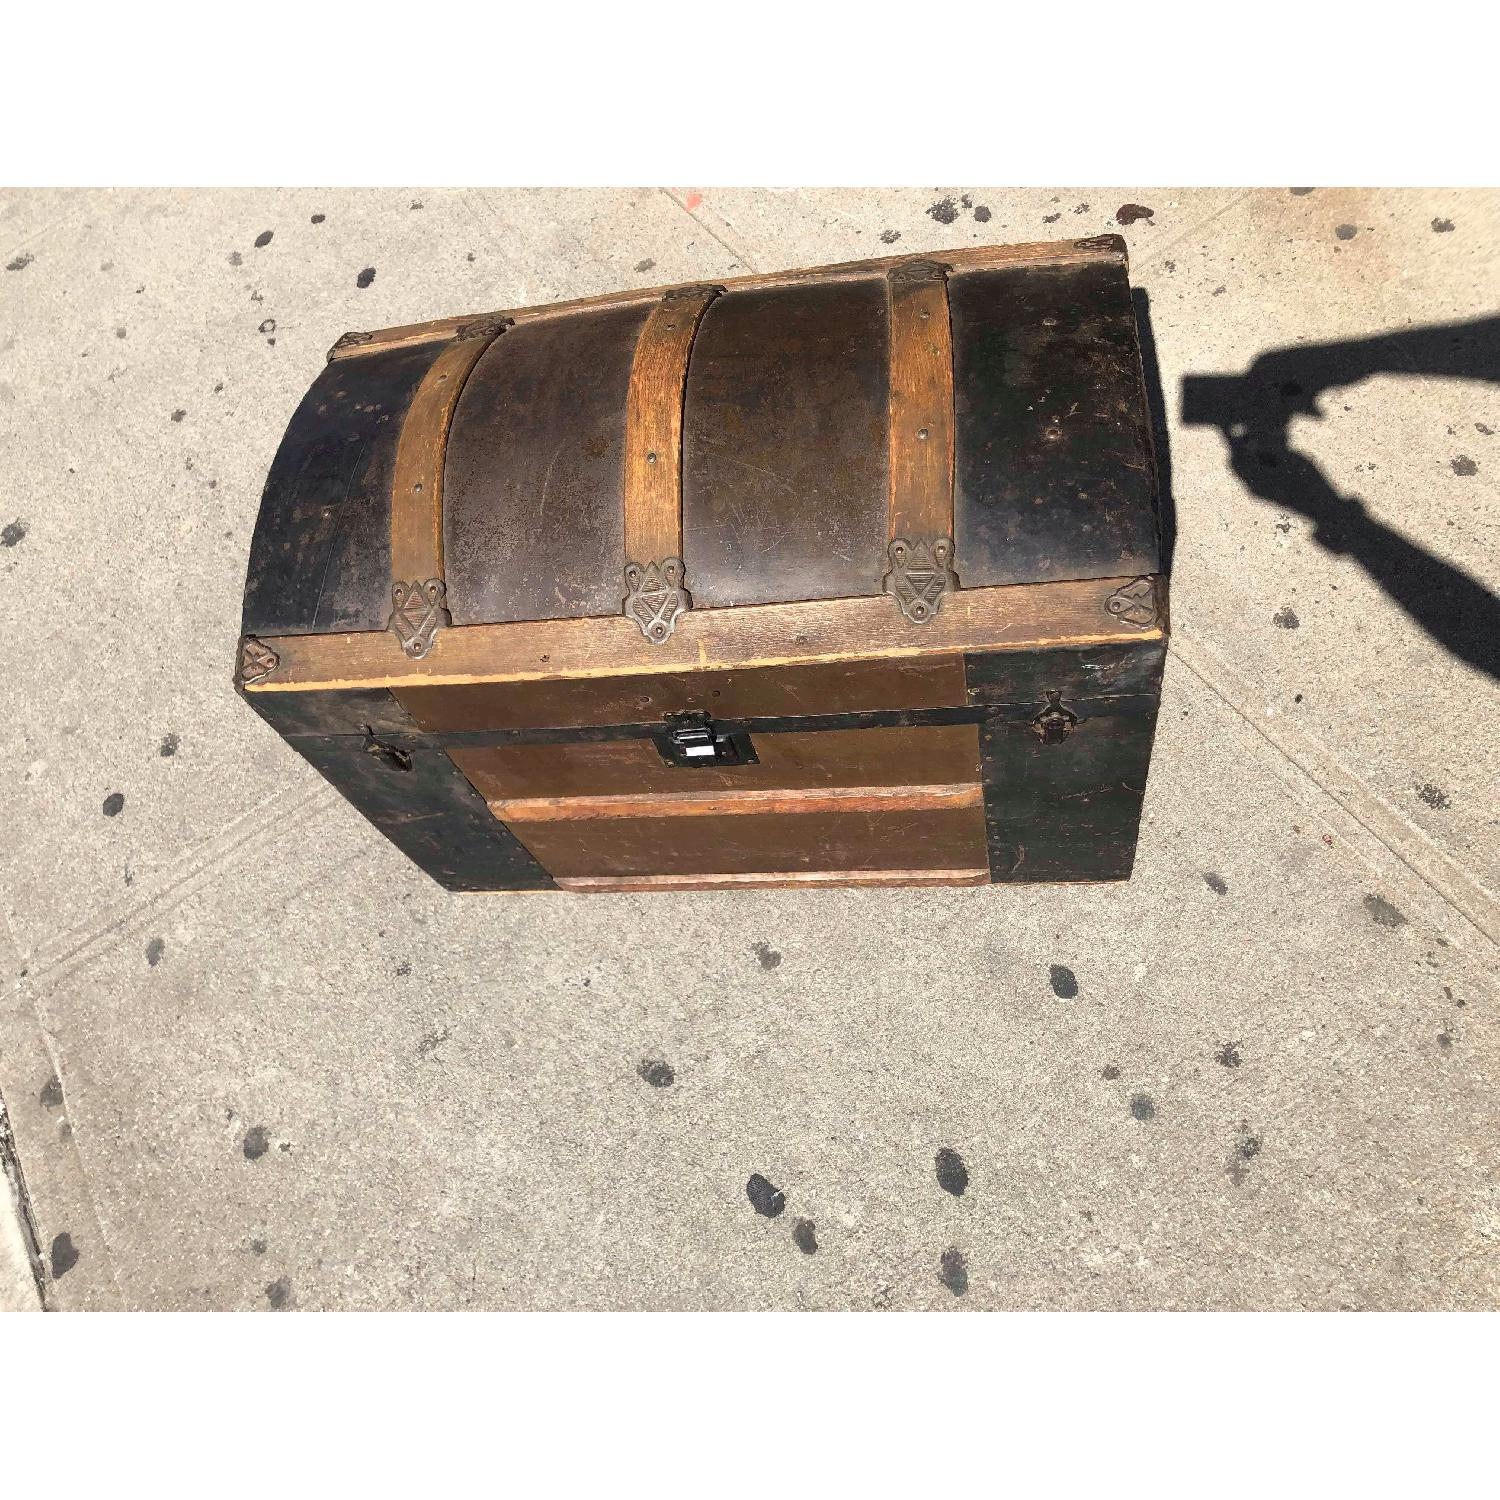 Antique 19th Century Dome Top Storage Trunk w/ Wheels - image-4